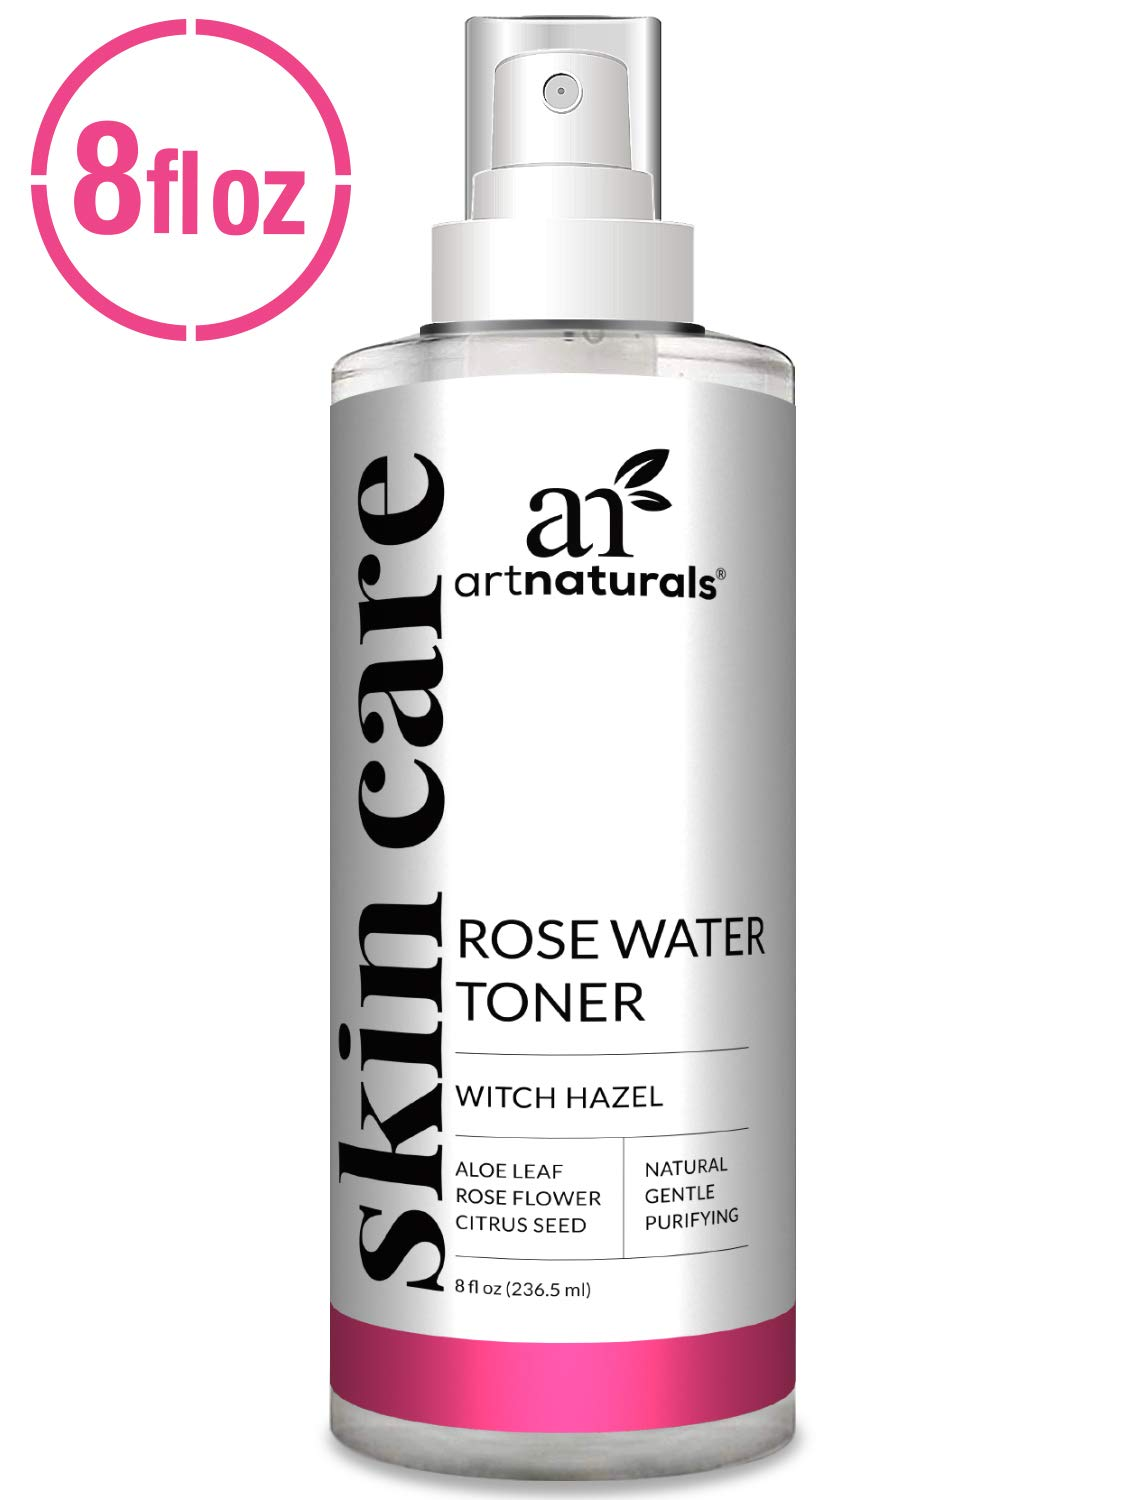 Artnaturals Rosewater Witch Hazel Toner 8 Fl Oz 236ml